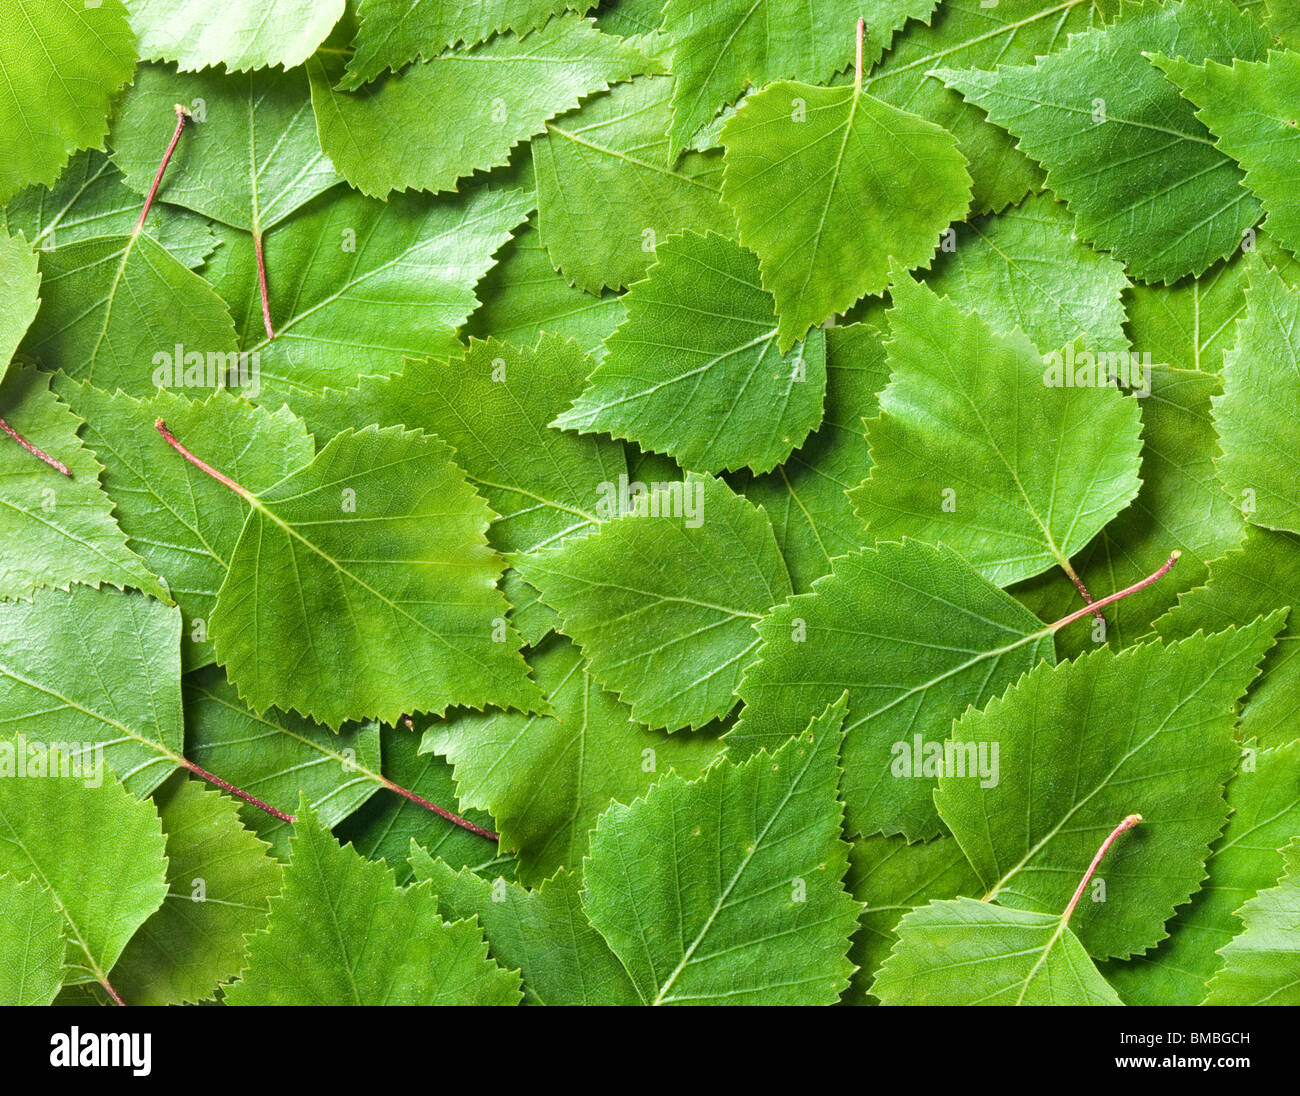 Silver birch leaves, Betula pendula - Stock Image